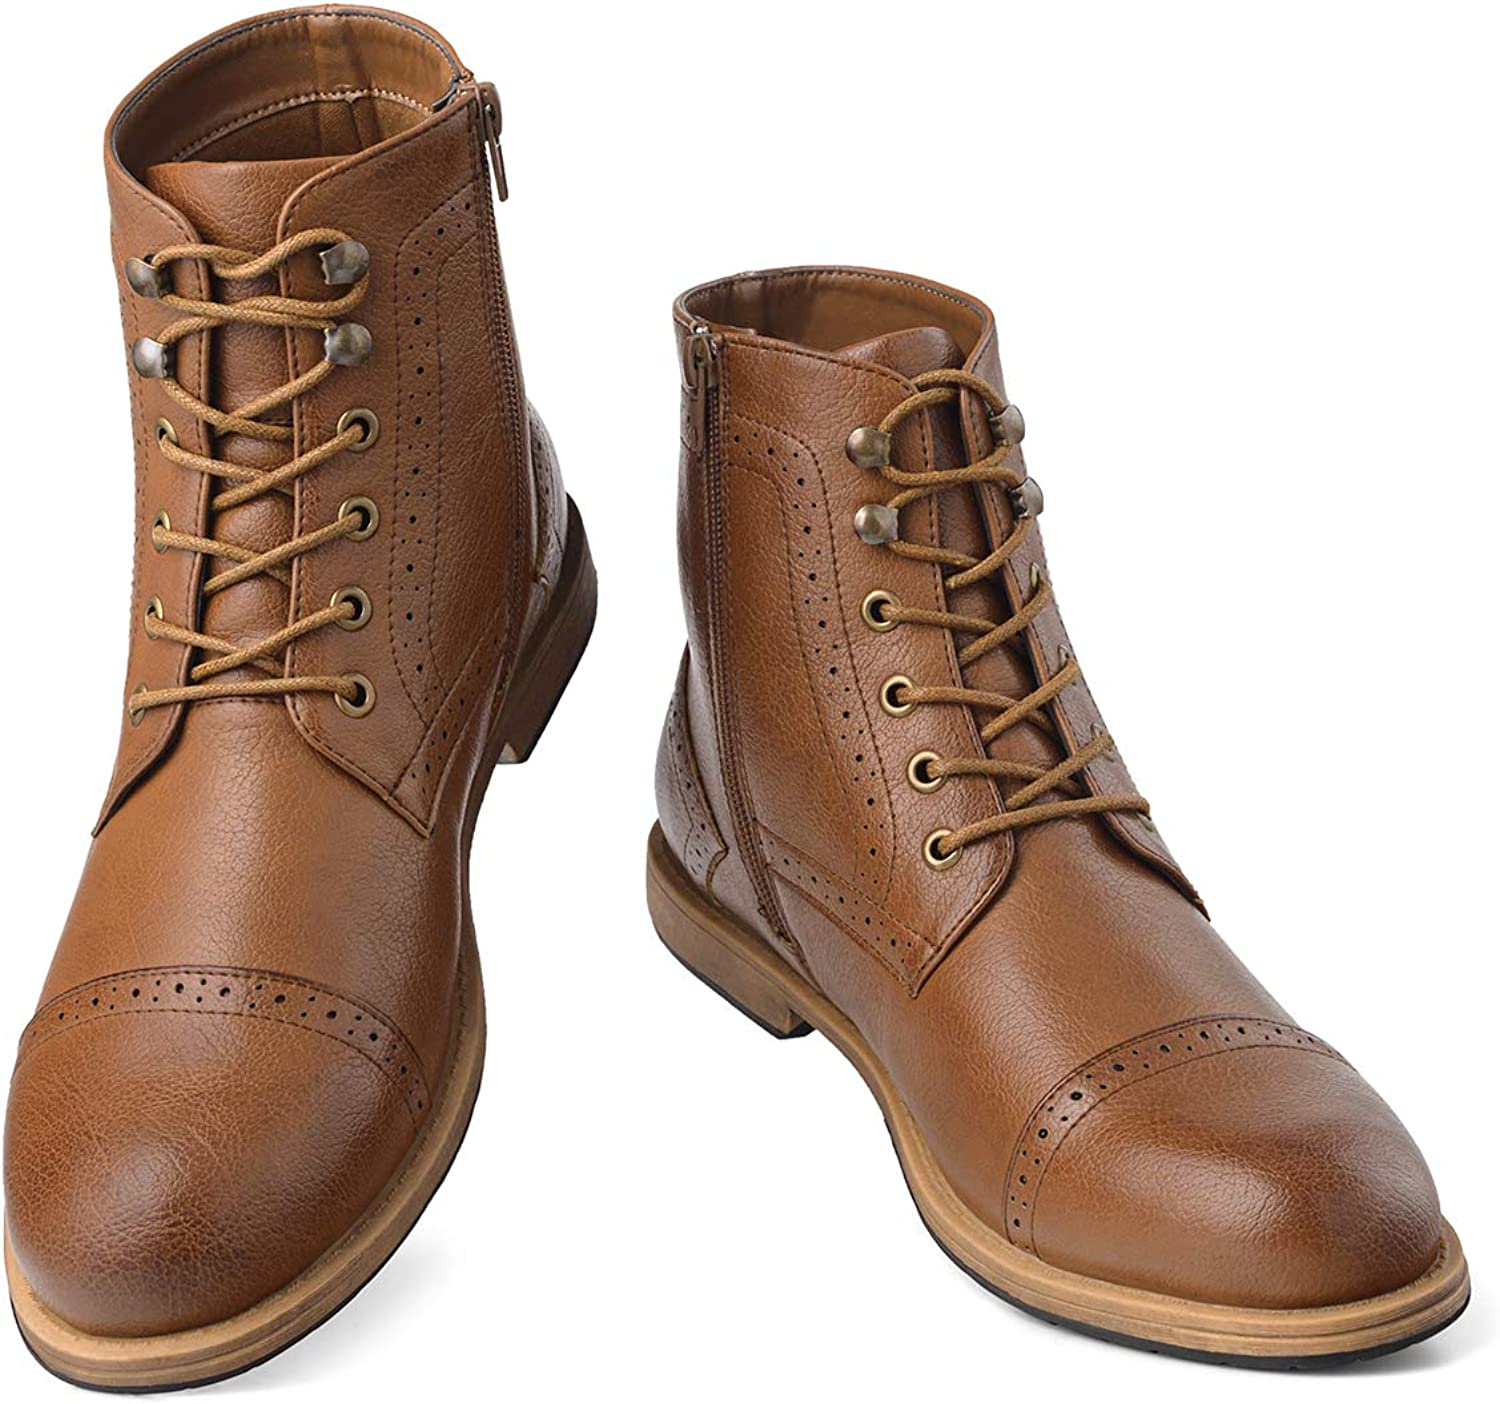 GM GOLAIMAN Men's Chukka Wingtip Oxford Boot Lace-Up Zip Boots Ankle Dress Boots Work Combat Hunter